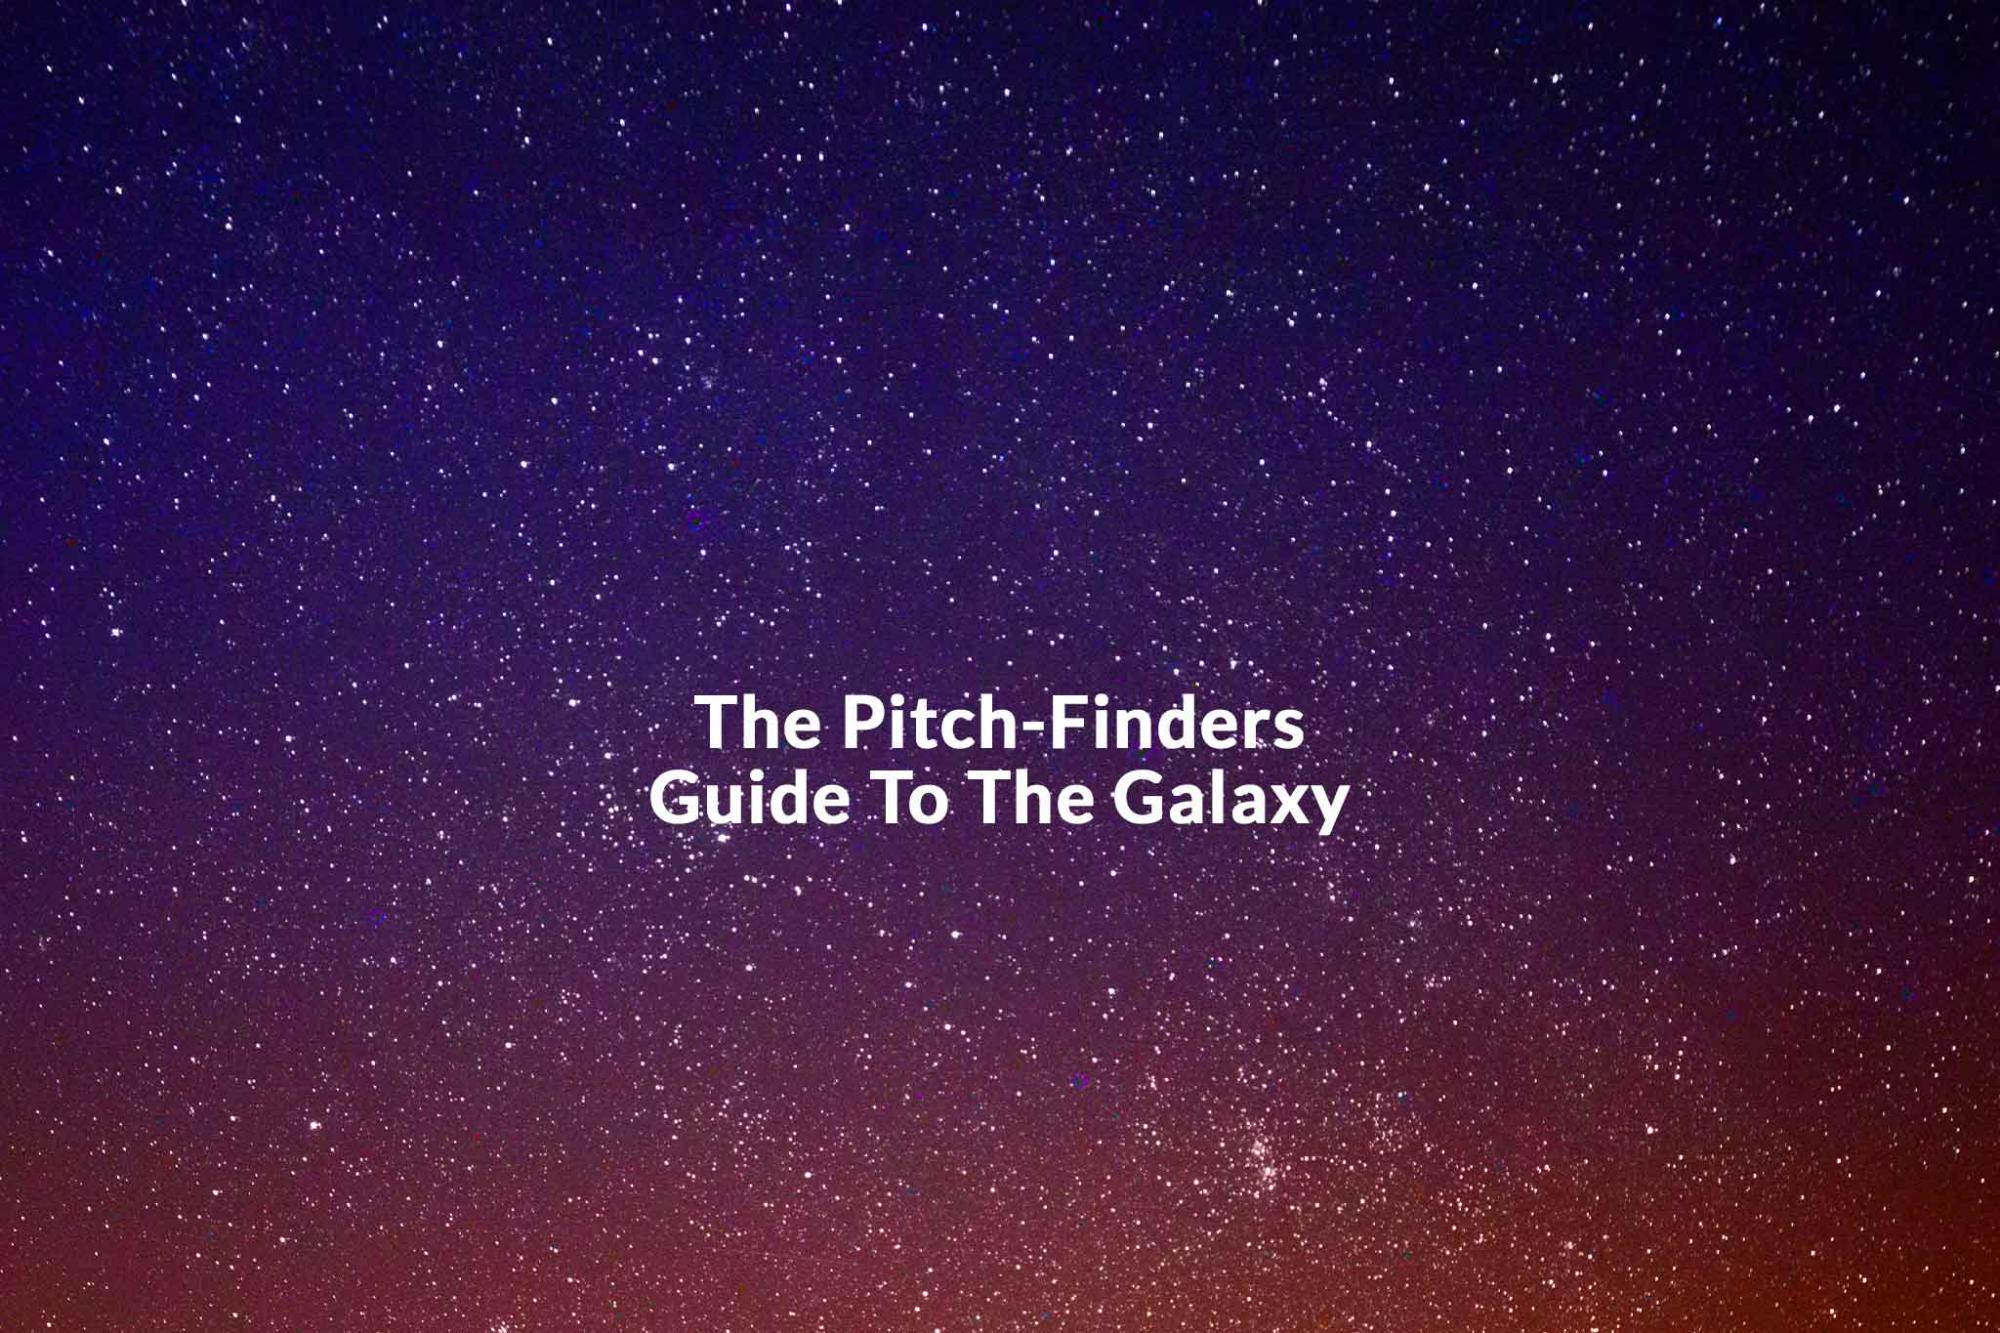 The Pitch-Finders Guide To The Galaxy | The best campsites for stargazing